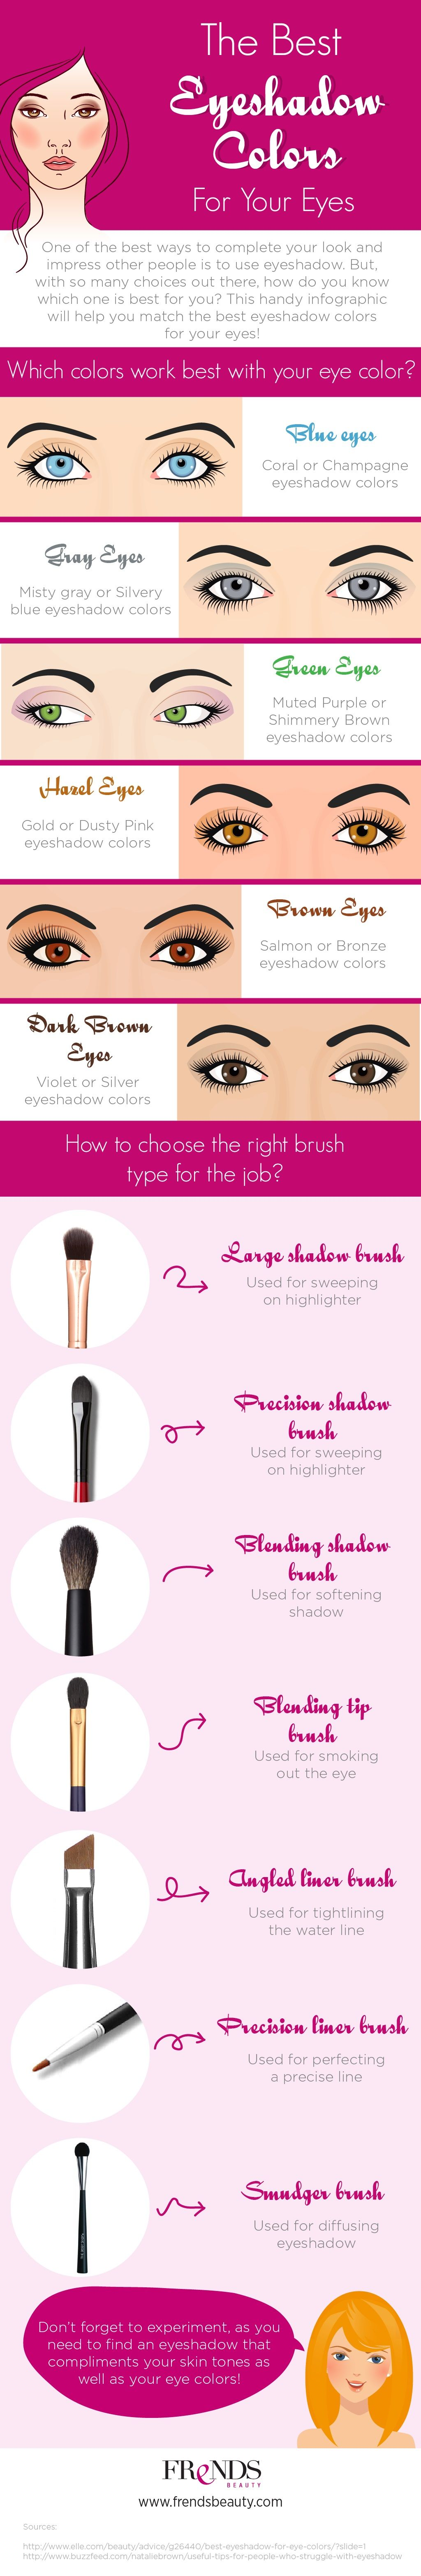 One of the best ways to complete your look and impress other people is to use eyeshadow. But with so many choices out there, how do you know which one is best for you? This handy infographic will help you match the best eyeshadow colors for your eyes!